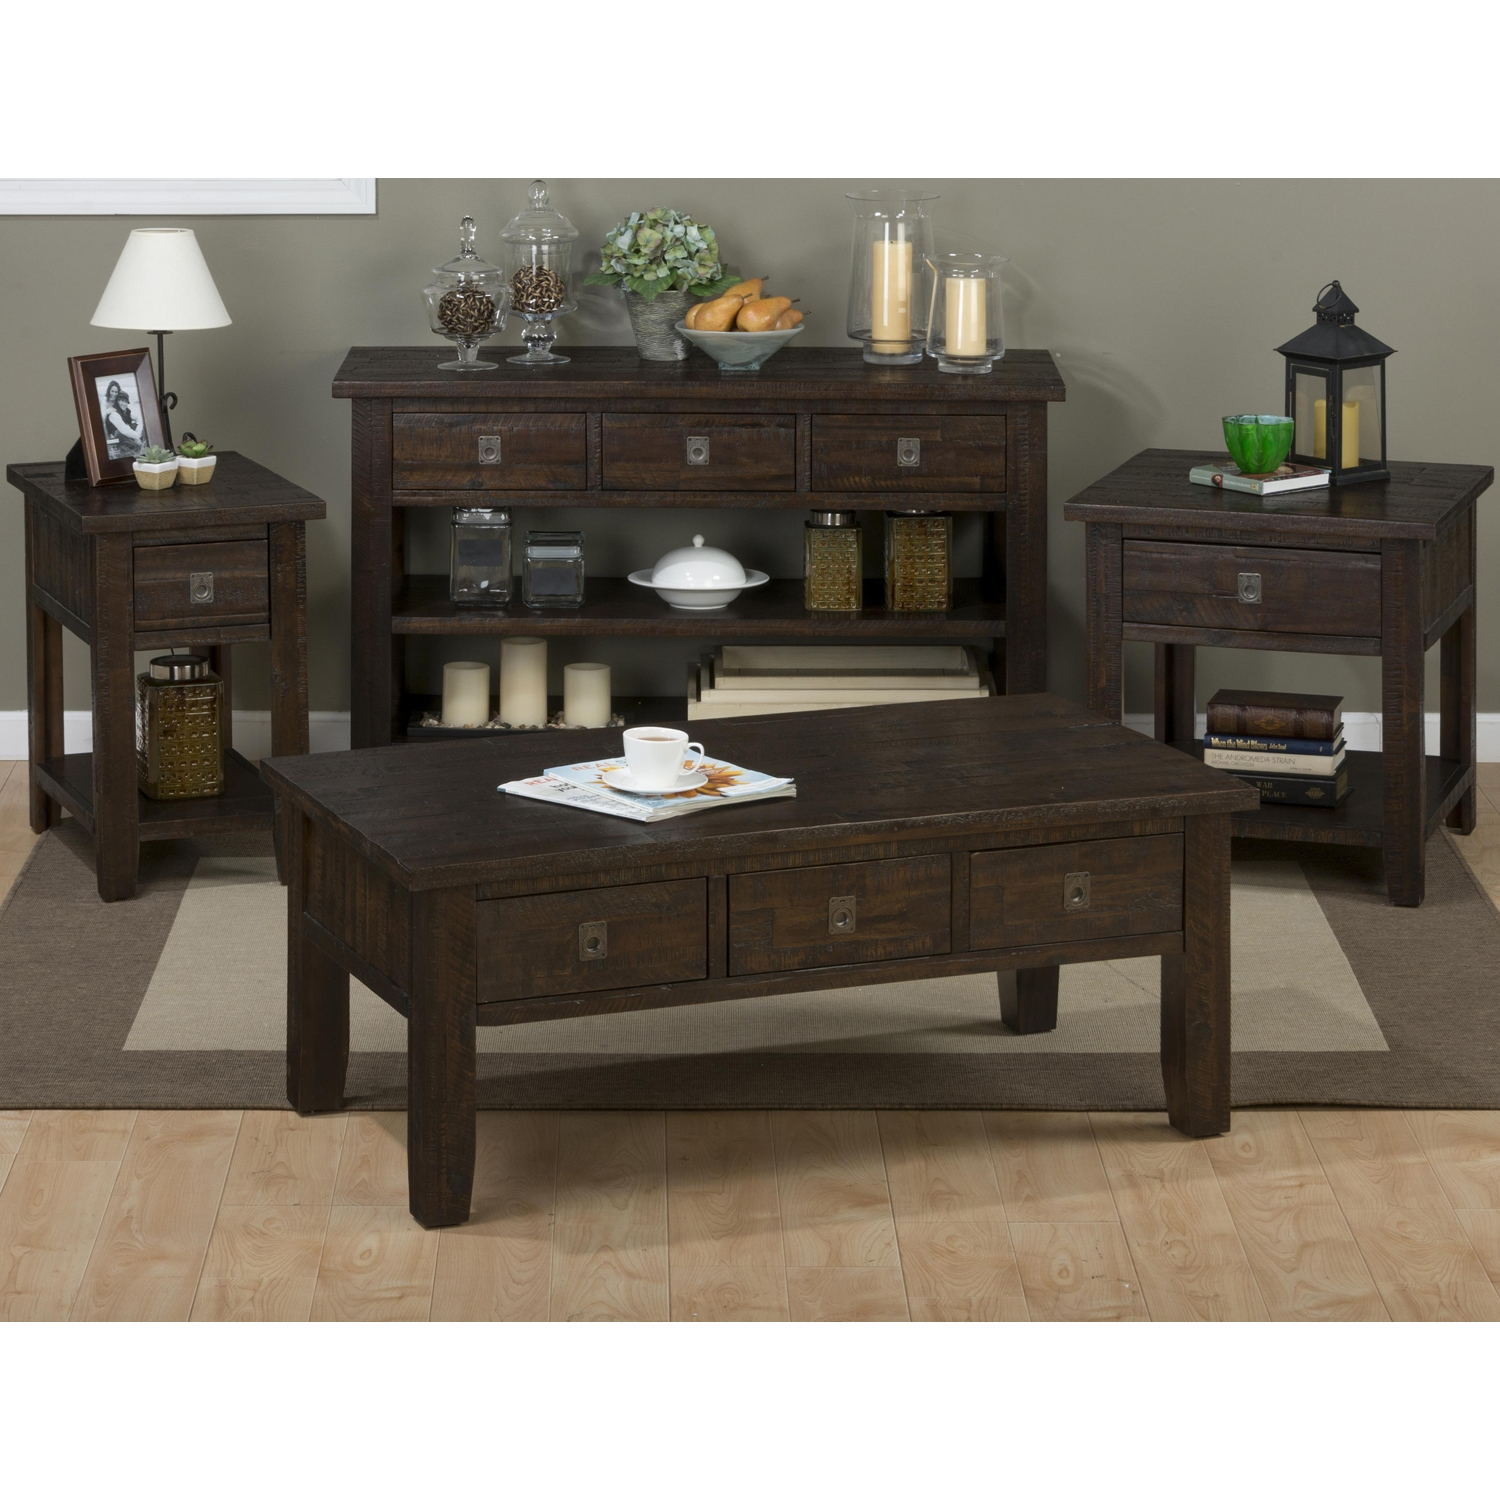 Kona Grove Rectangle Cocktail Table - Chocolate - JOFR-704-1